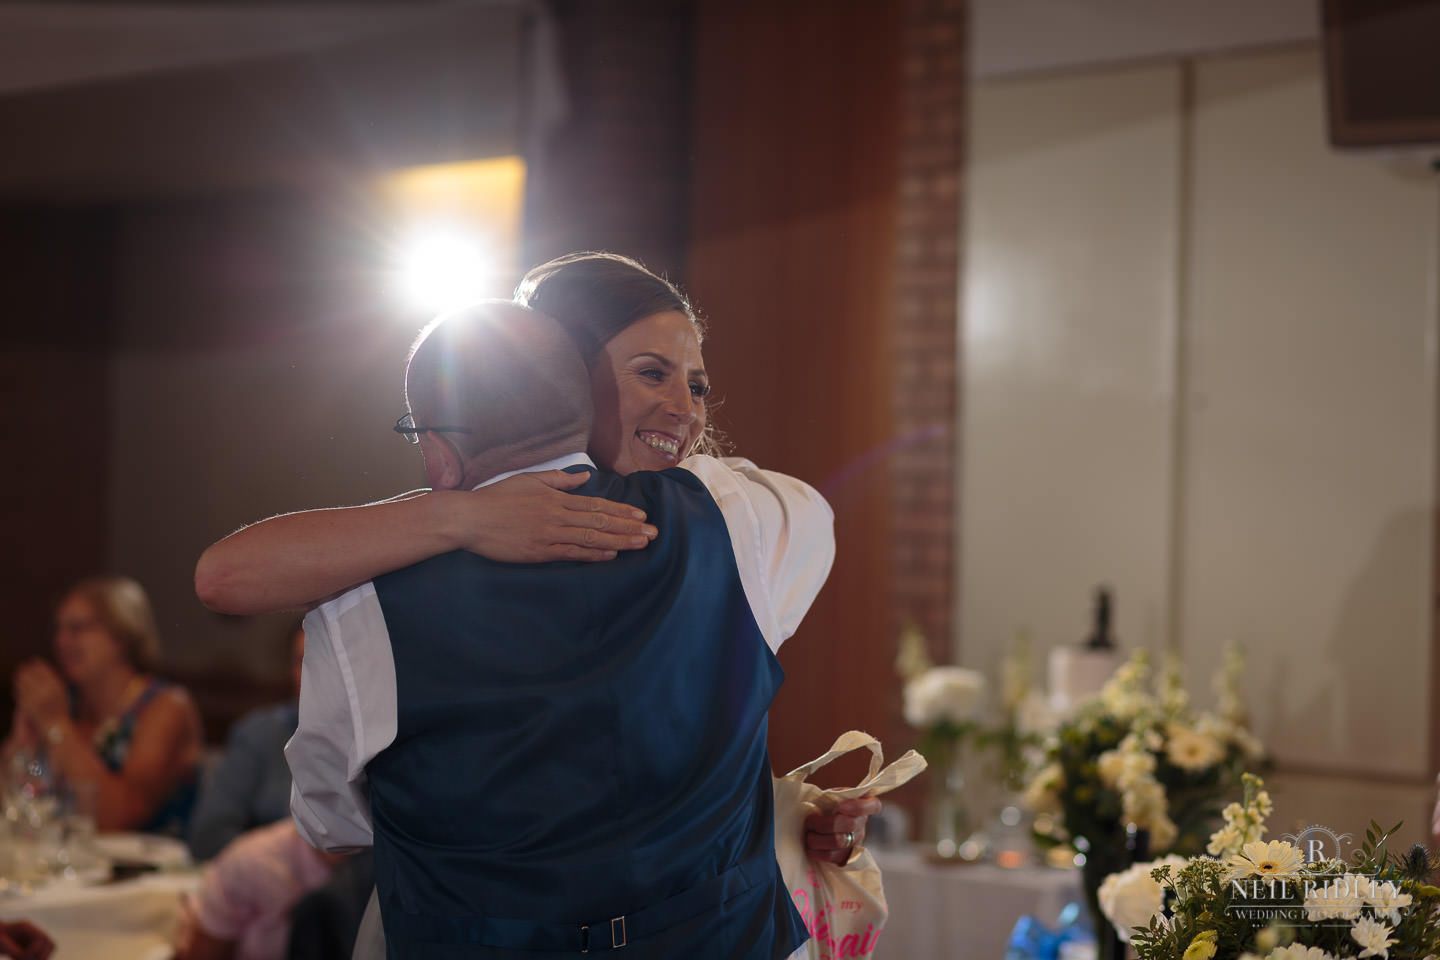 Groom gives bridesmaid a hug during the wedding breakfast at Maccdonald Portal Spa and Hotel